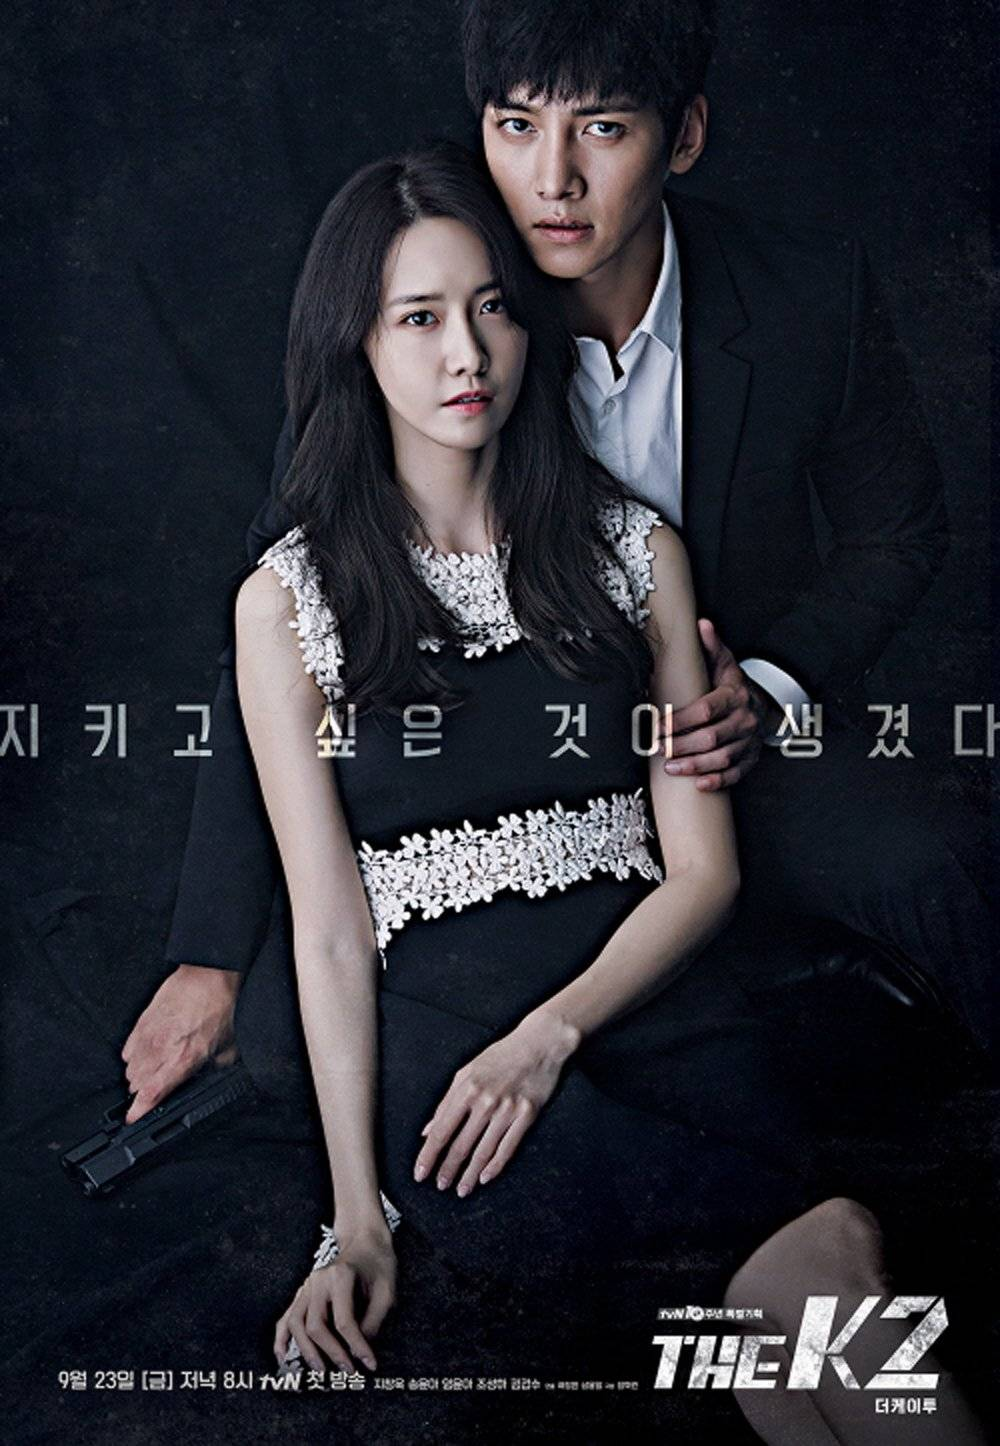 Watch and Stream The K2 Episode 1 with English Subtitles